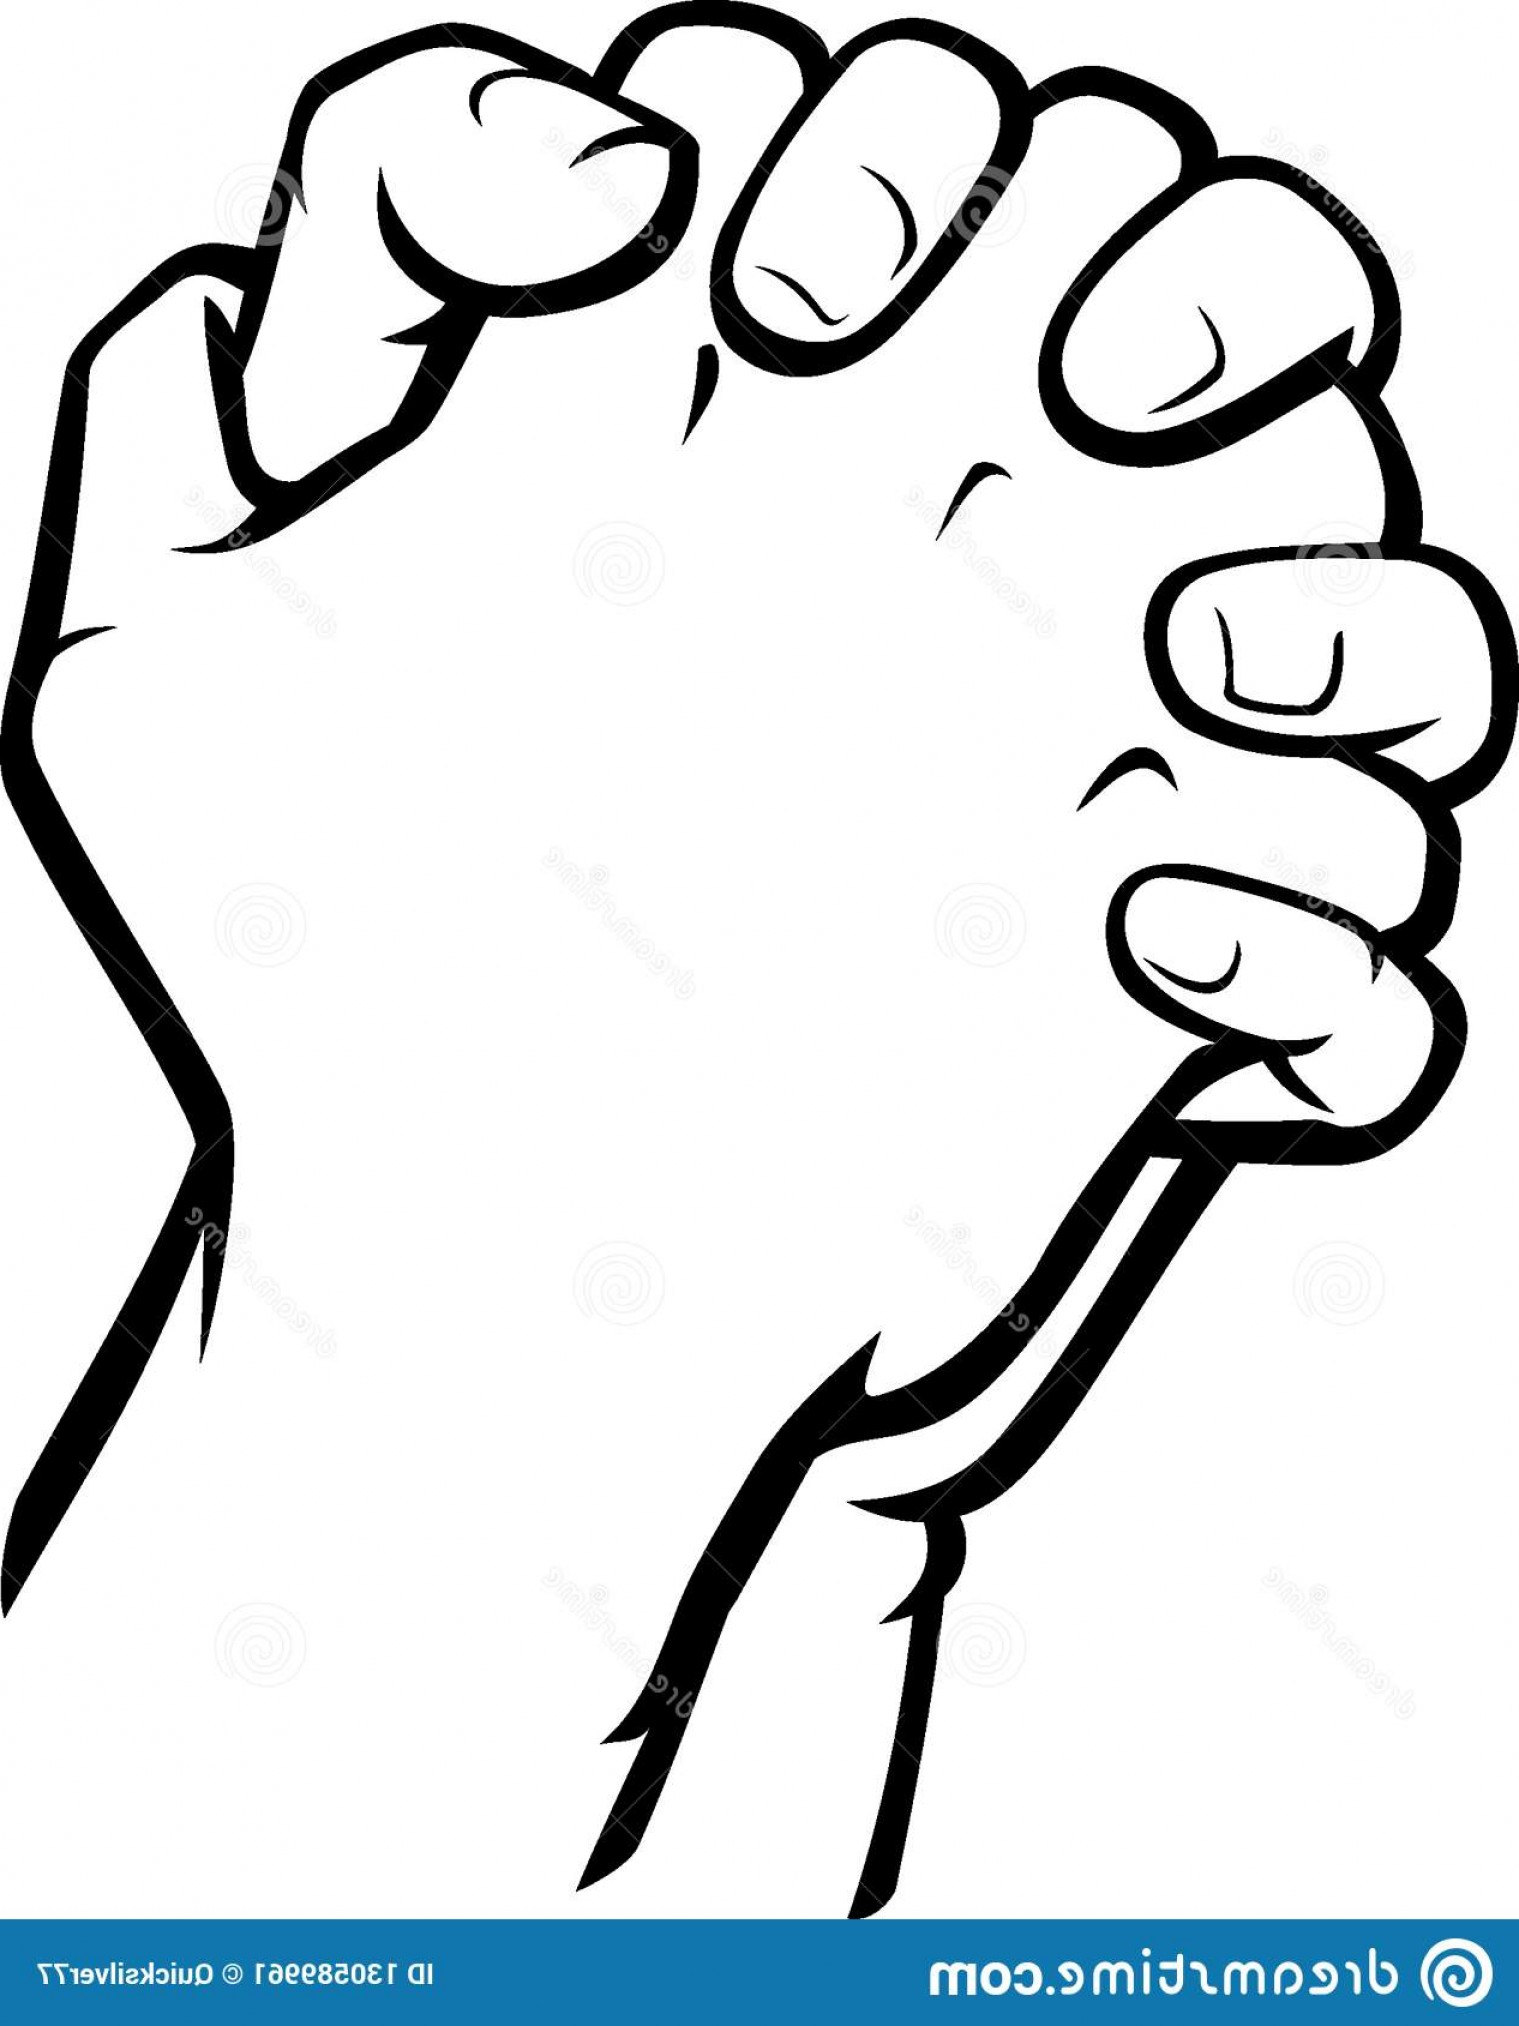 Isolated Vector Illustration Line Art Doodle Hand Clasp.